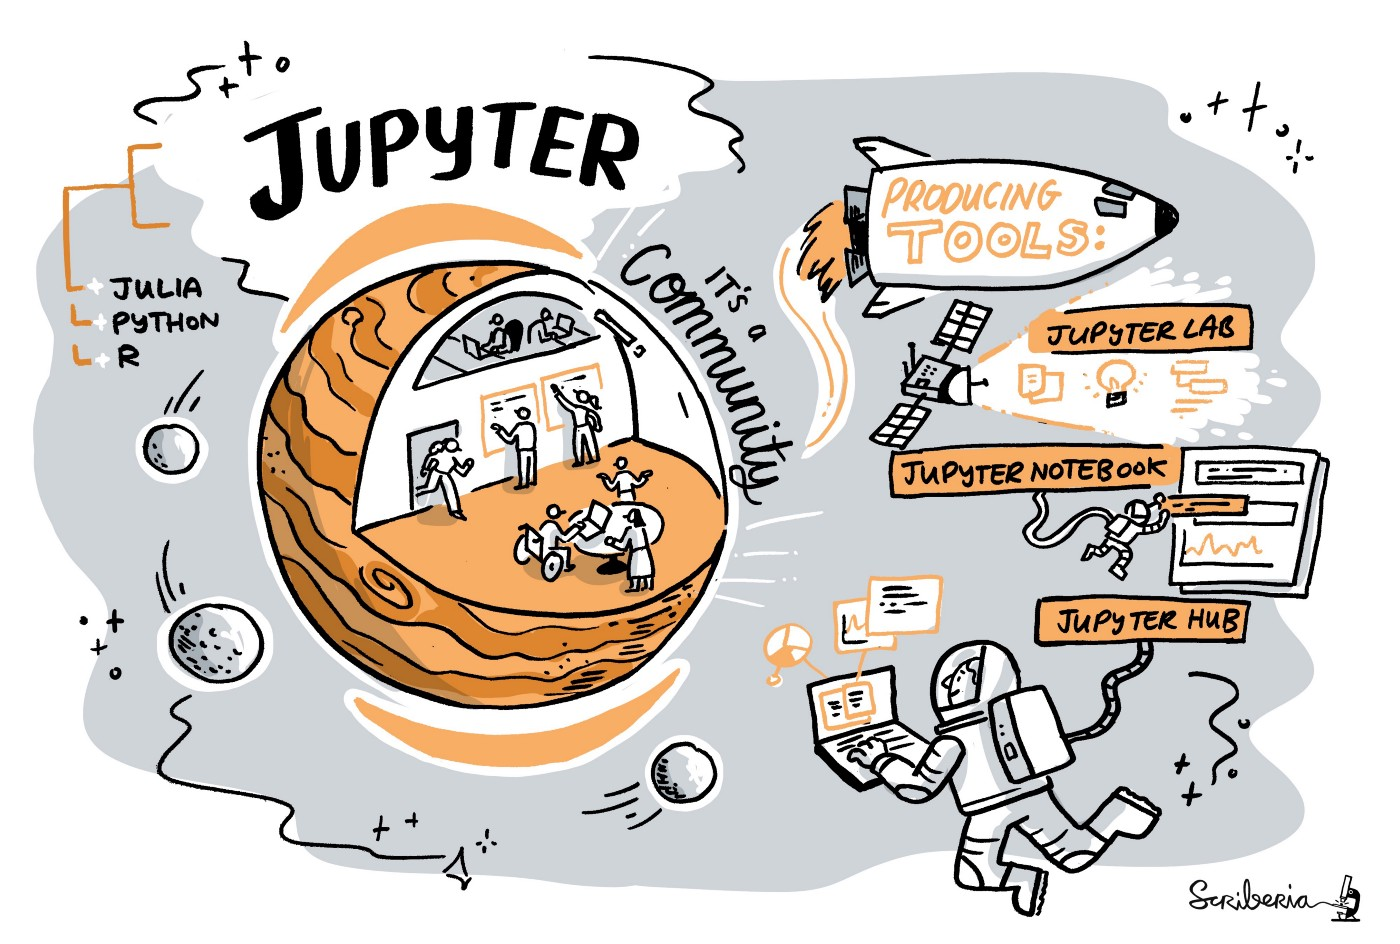 This image was created by Scriberia for The Turing Way community and is used under a CC-BY licence